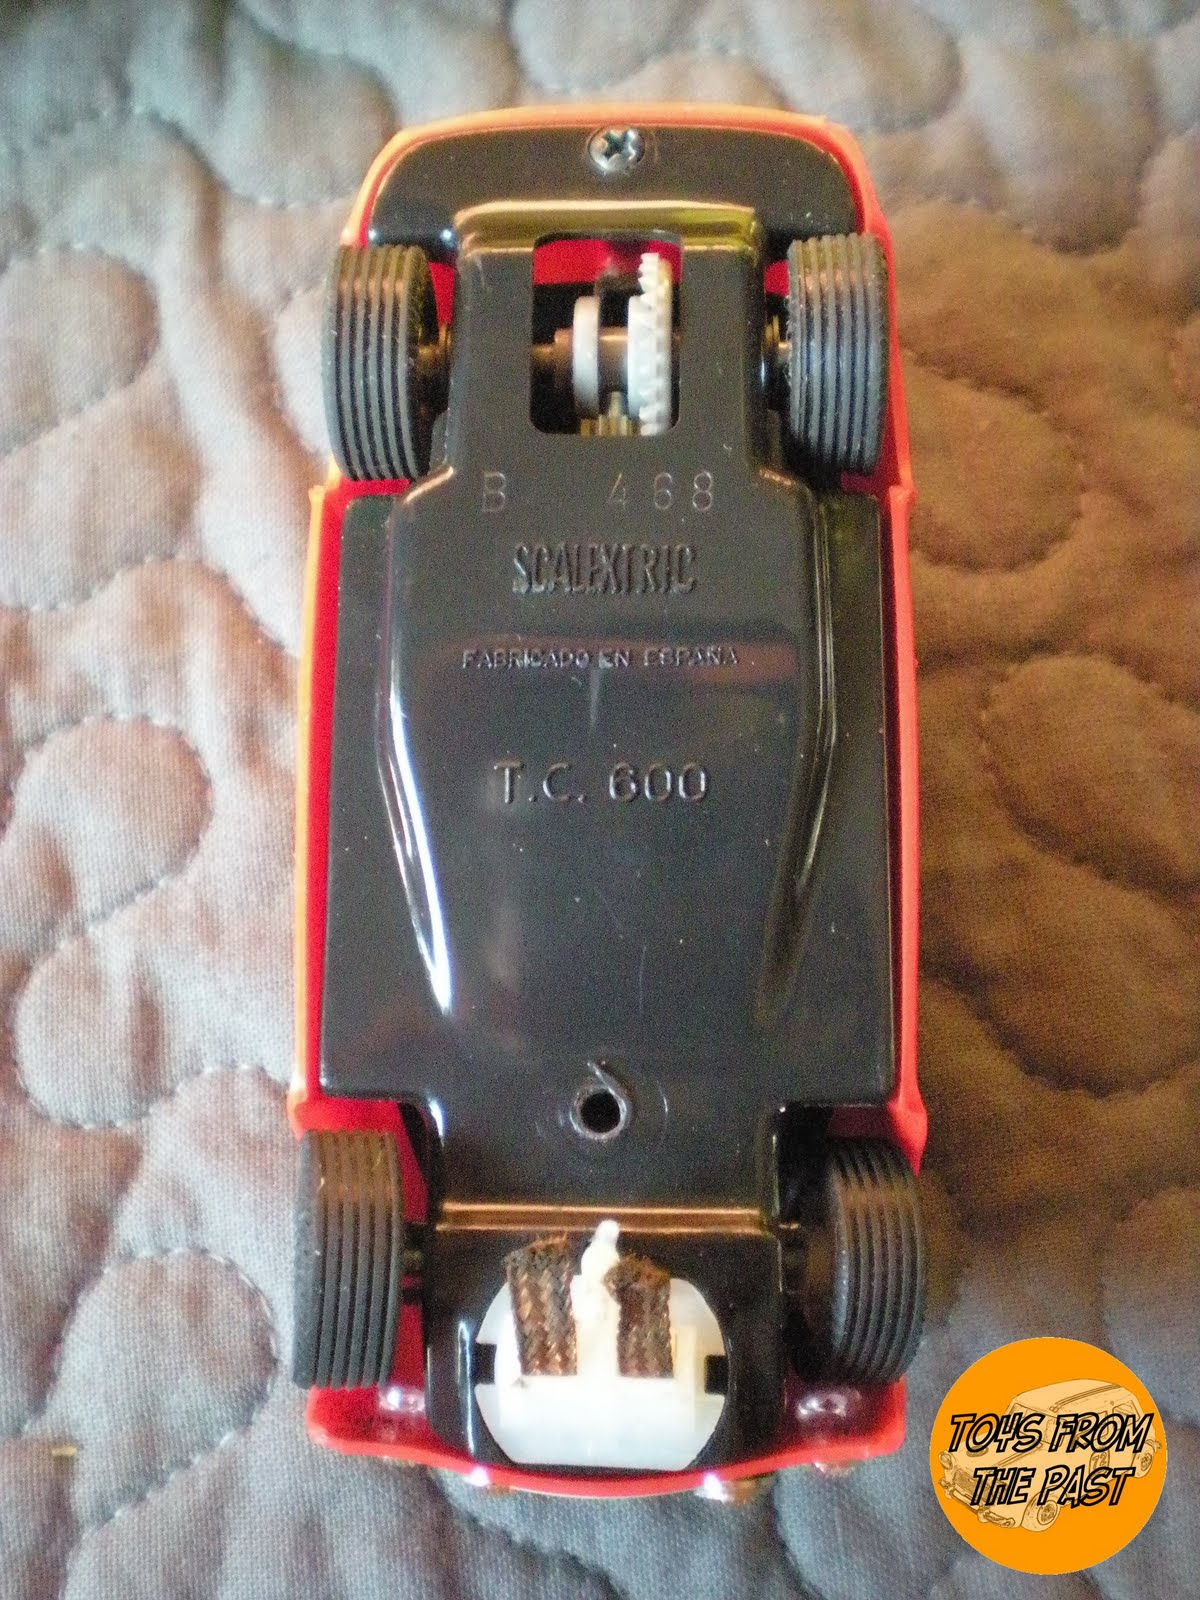 Scalextric Type 1 reproduction box